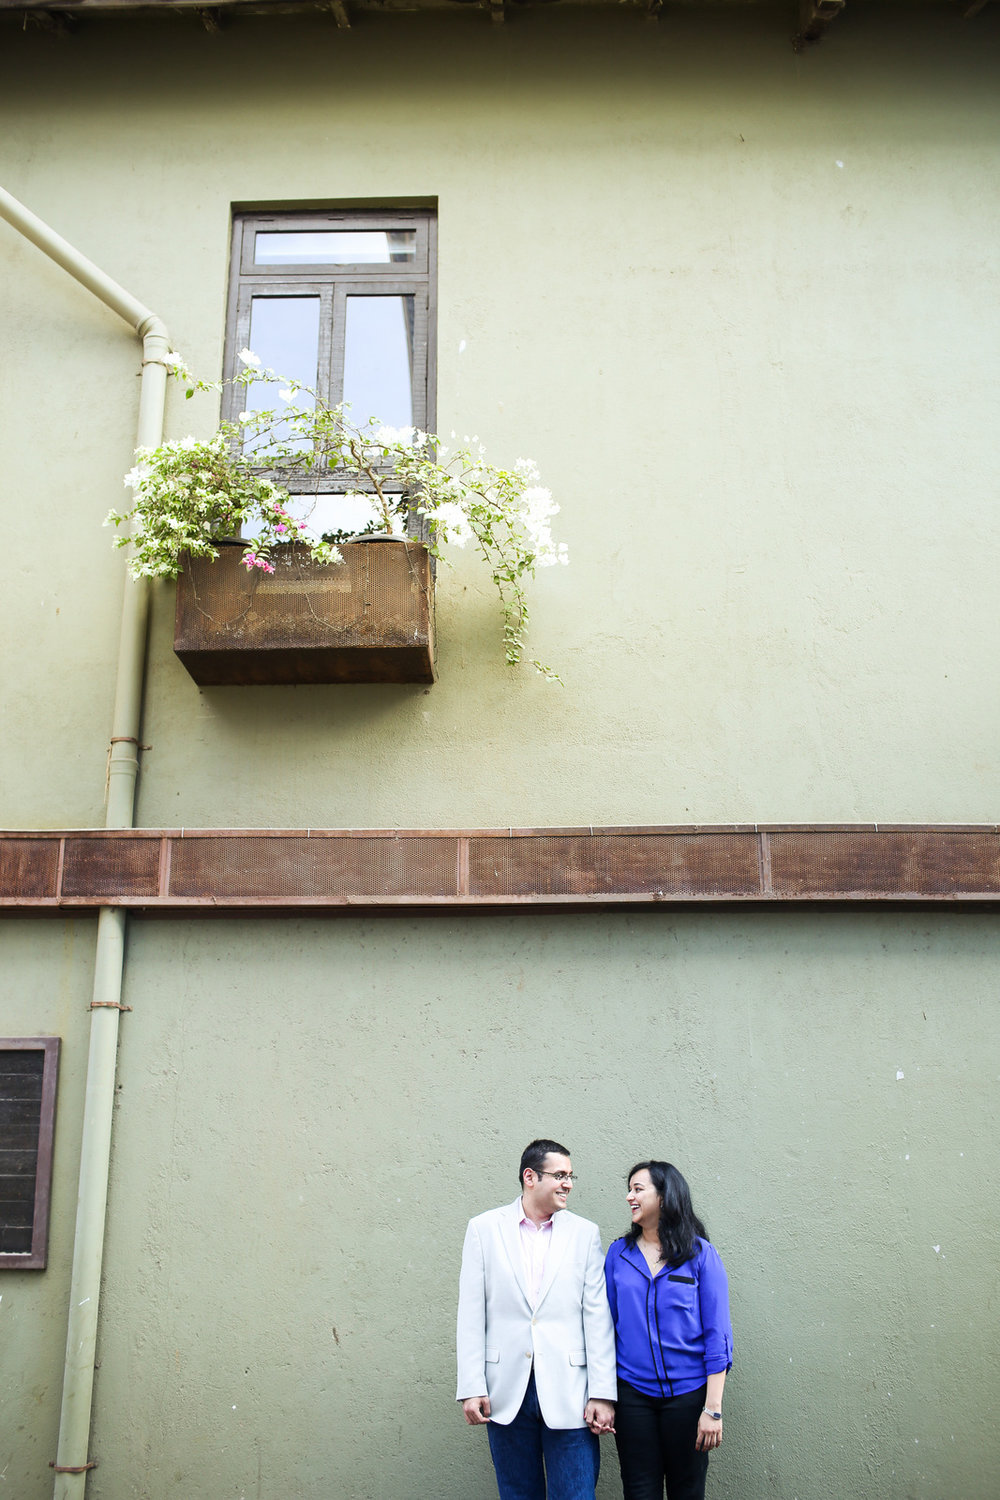 mumbai-engagement-session-into-candid-photography-rh-03.jpg